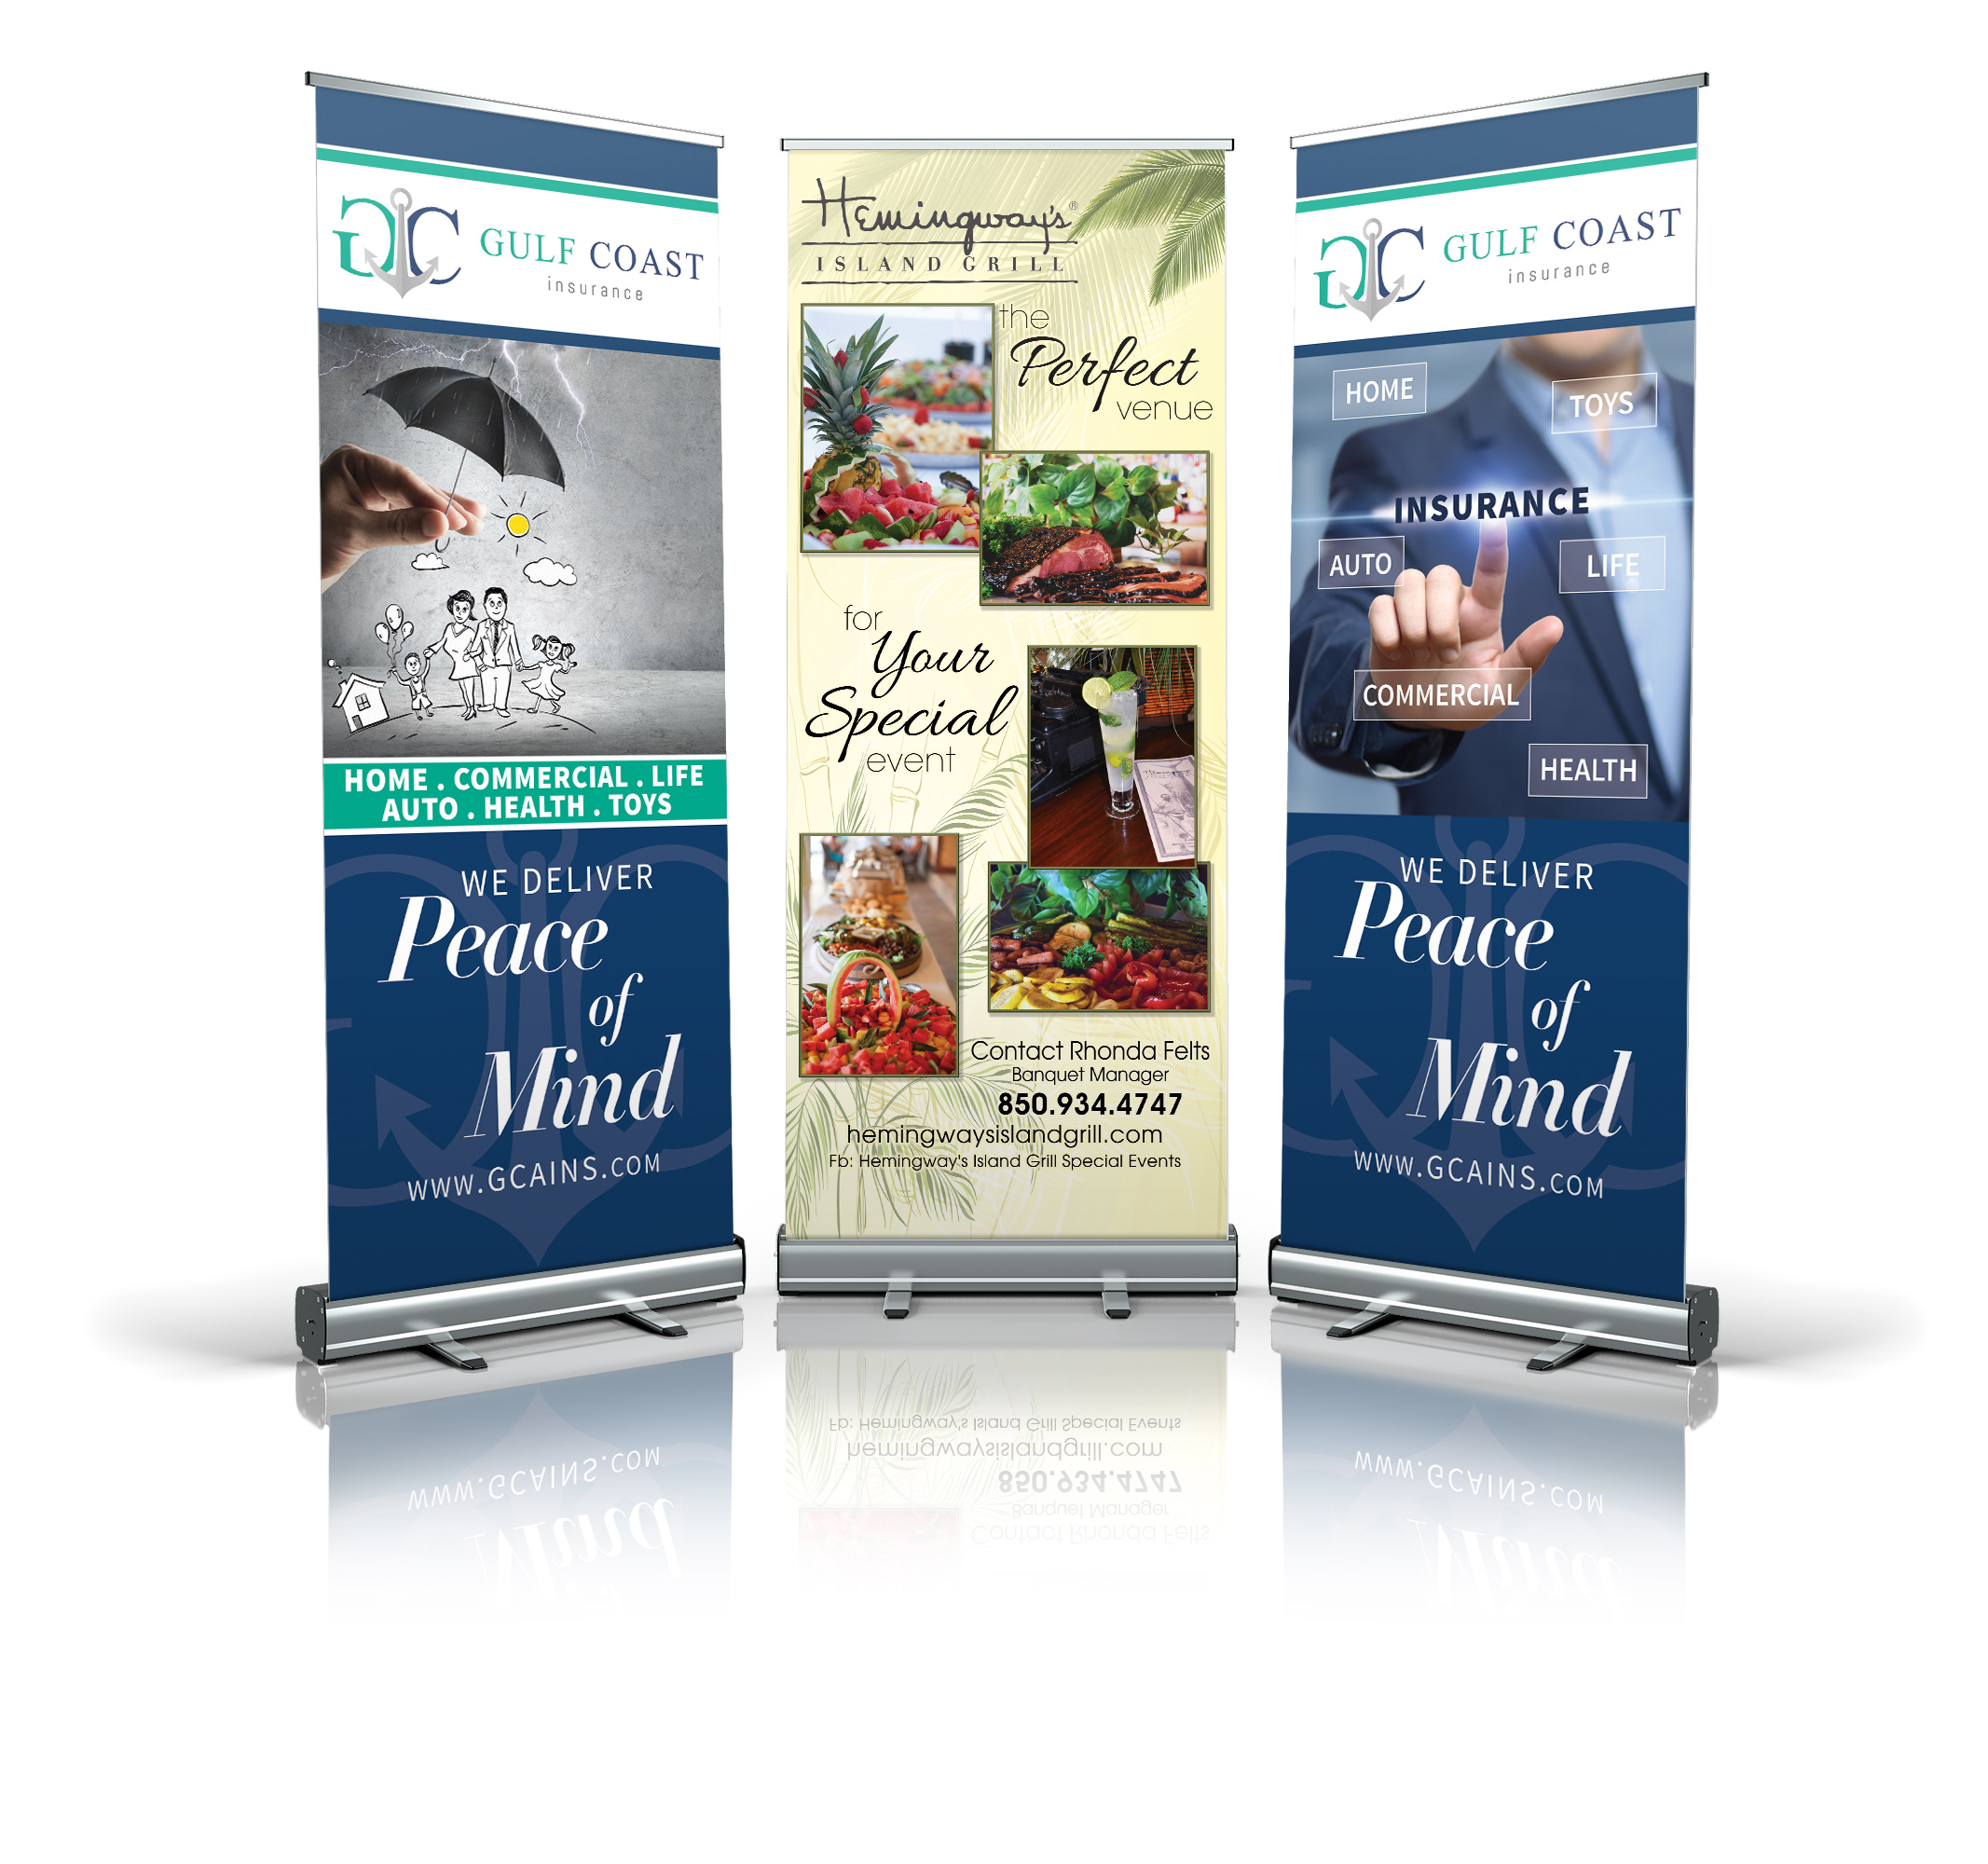 graphic design on custom printed banner for exhibition